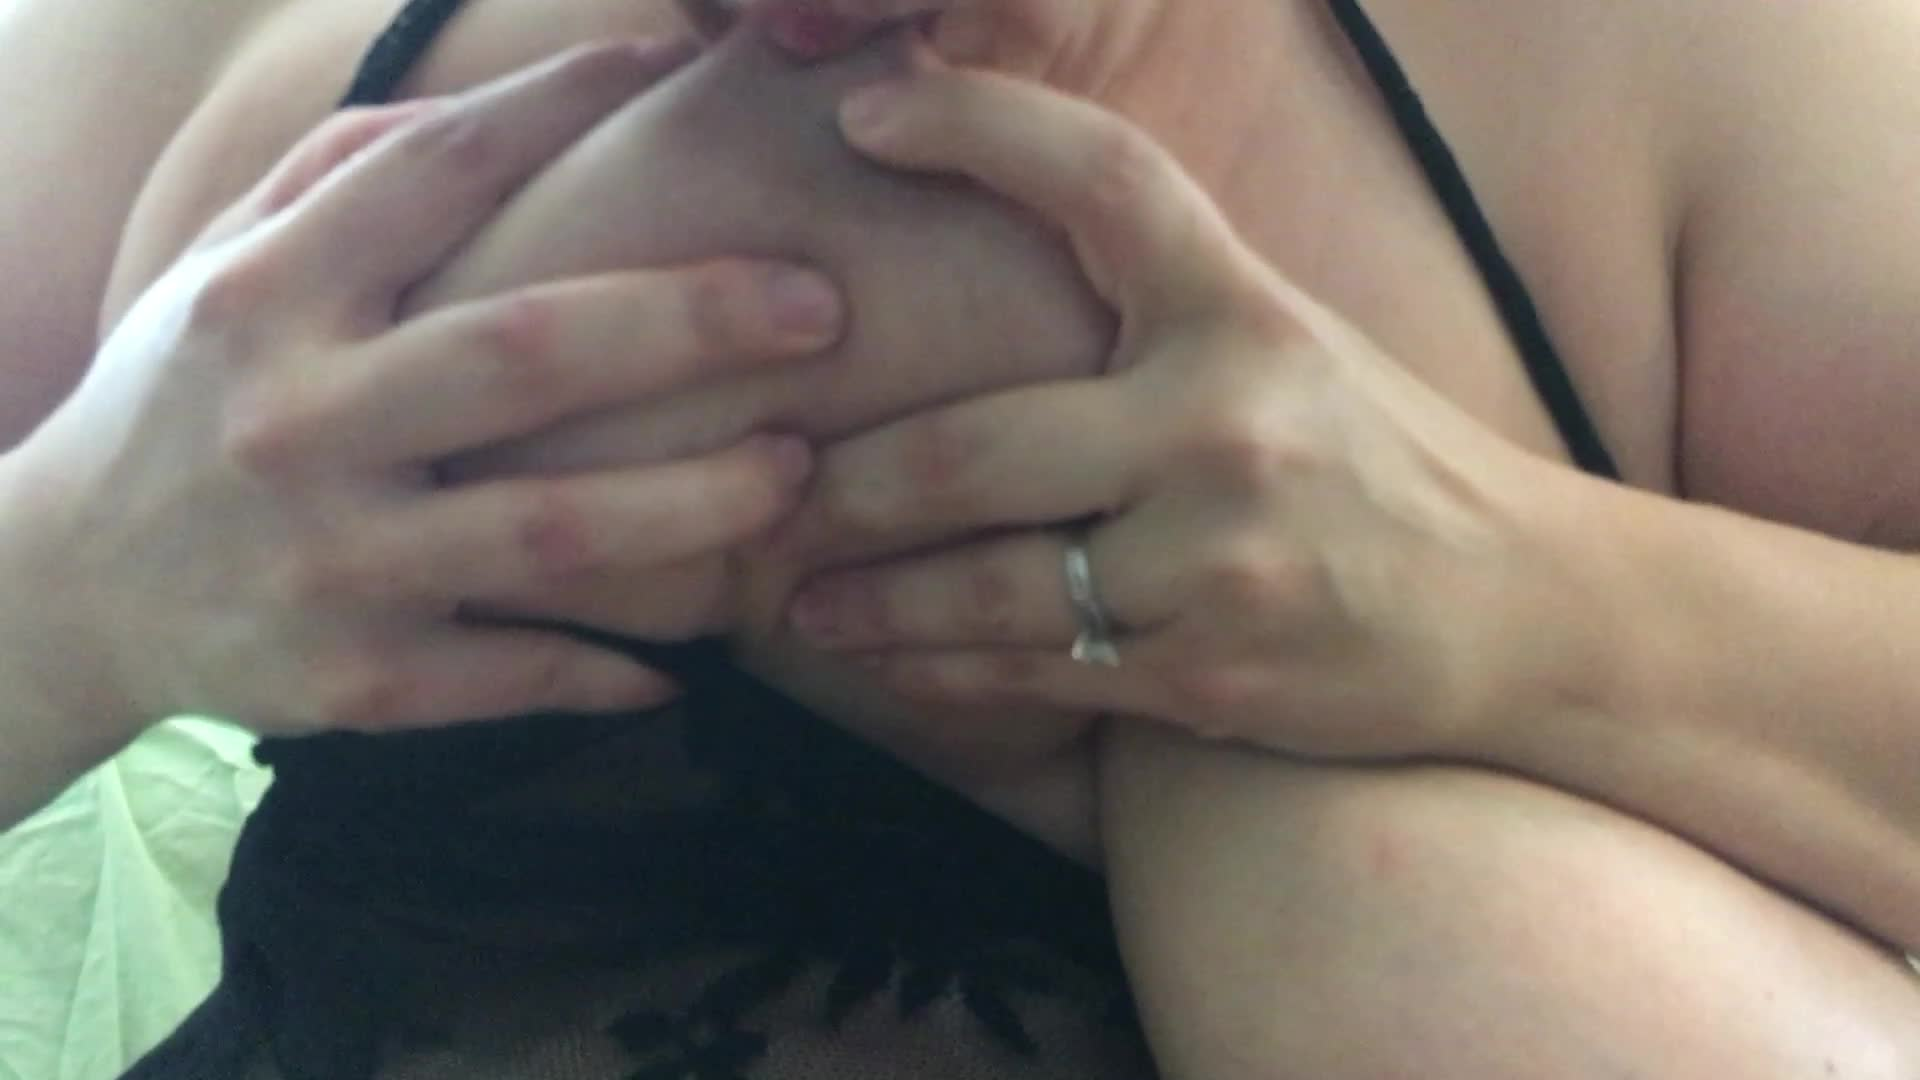 Many asked and here it is, me licking and sucking on my giant milky tits